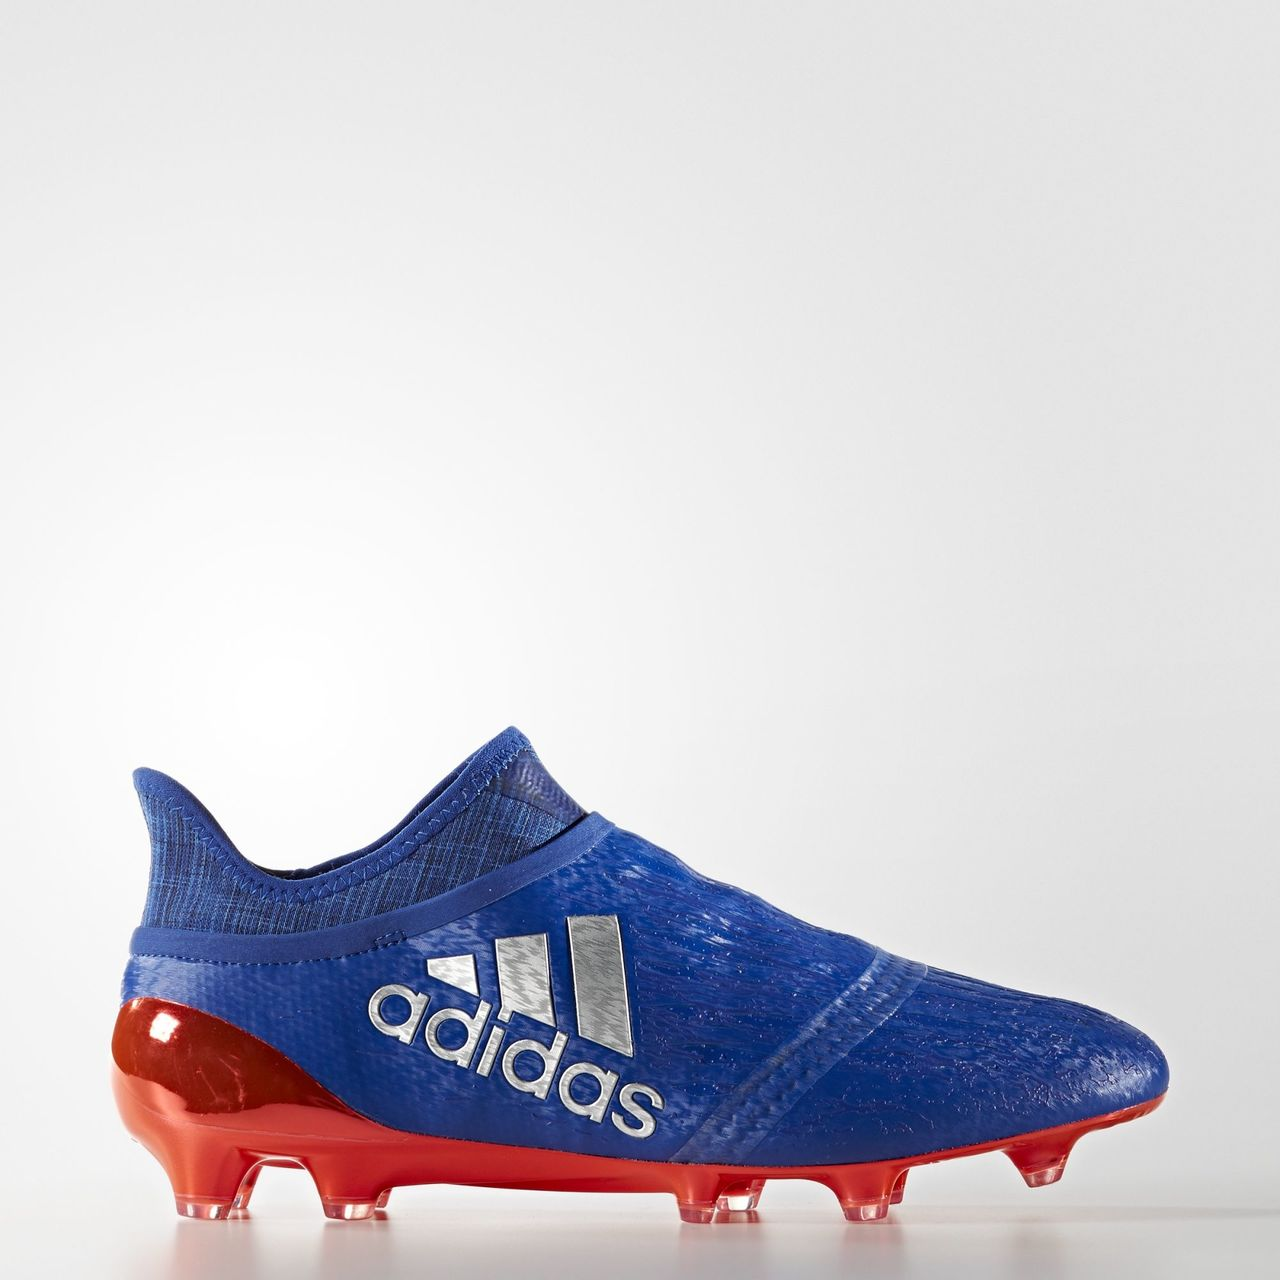 176fe534b Click to enlarge image  adidas_x_16_purechaos_firm_ground_boots_collegiate_royal_solar_red_solar_red_a.jpg  ...